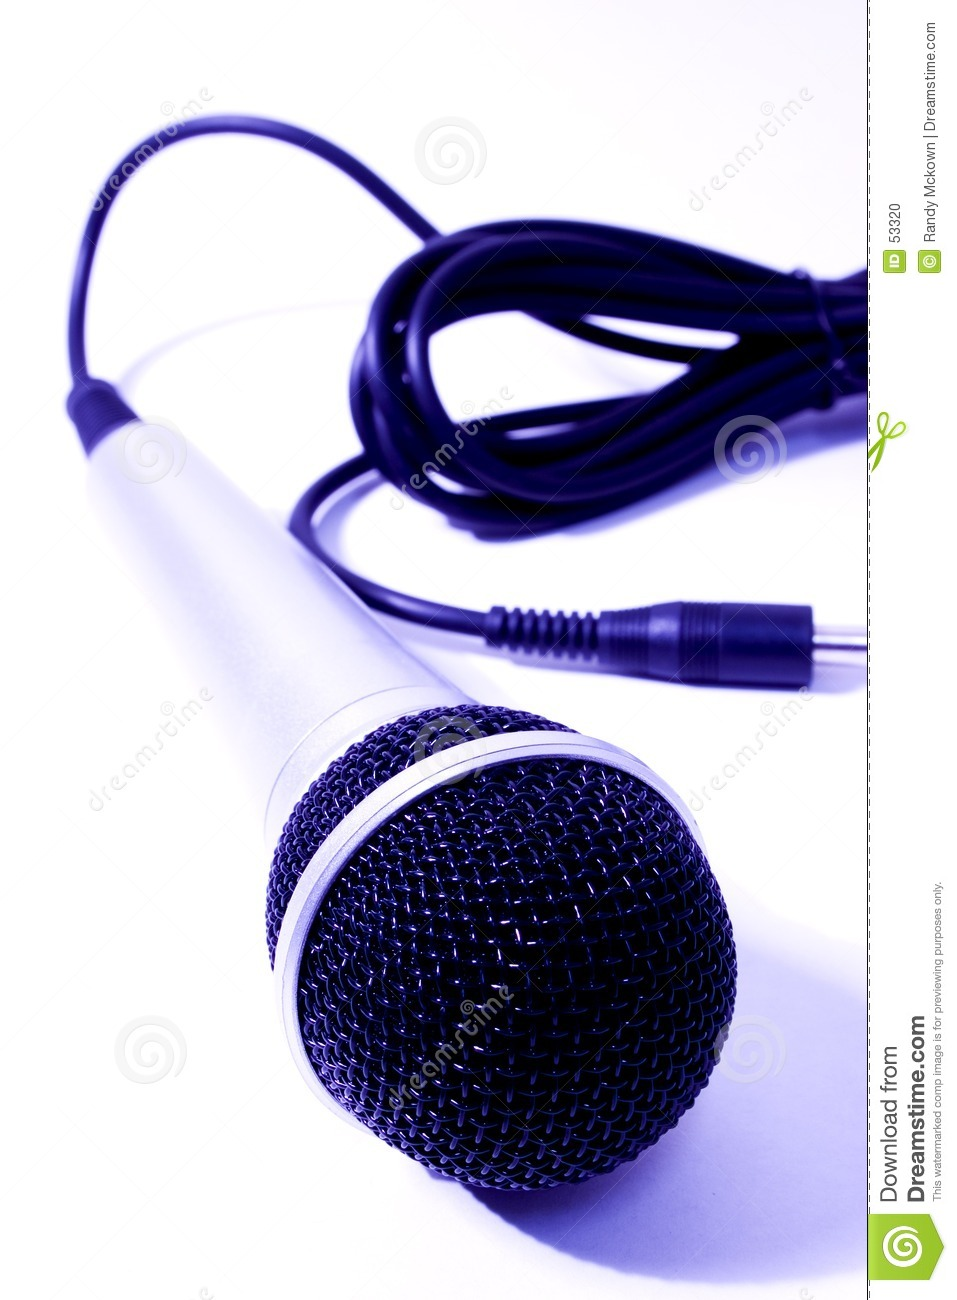 Download Microphone photo stock. Image du microphone, instrument - 53320